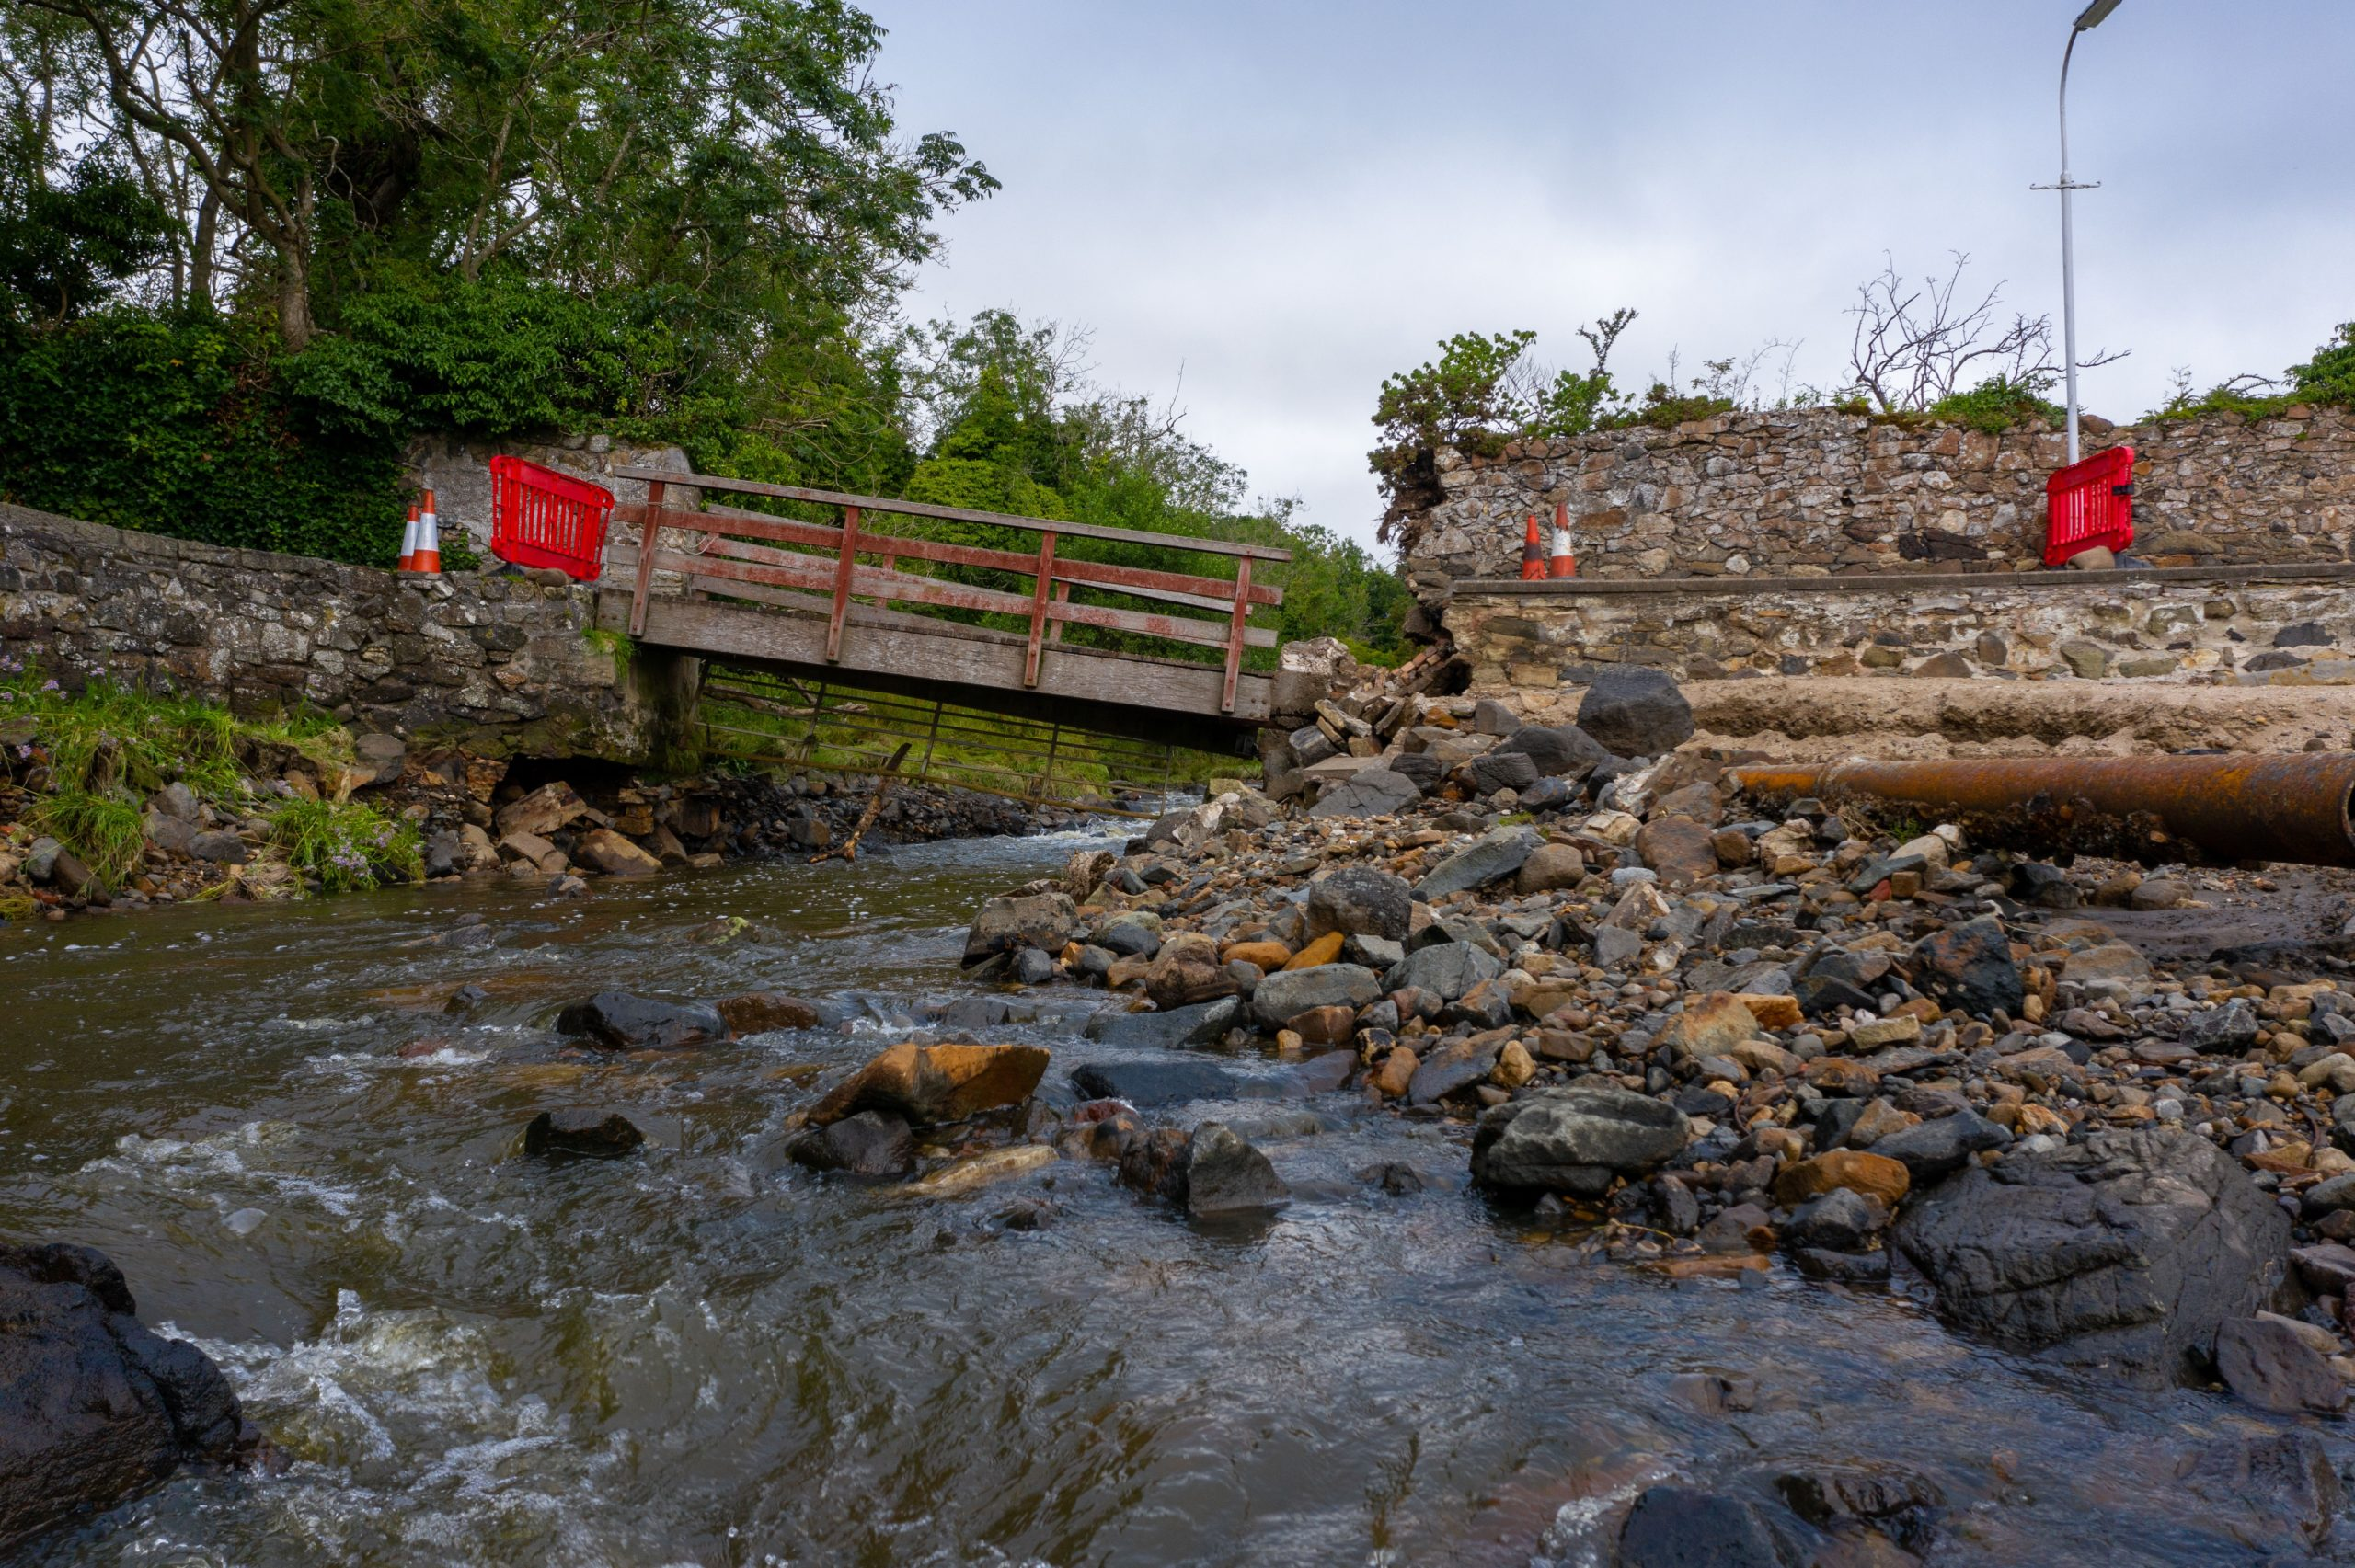 Damage to the bridge connecting Black Sands to Silver Sands in Aberdour, heavilly damaged in the storm on Tuesday night.